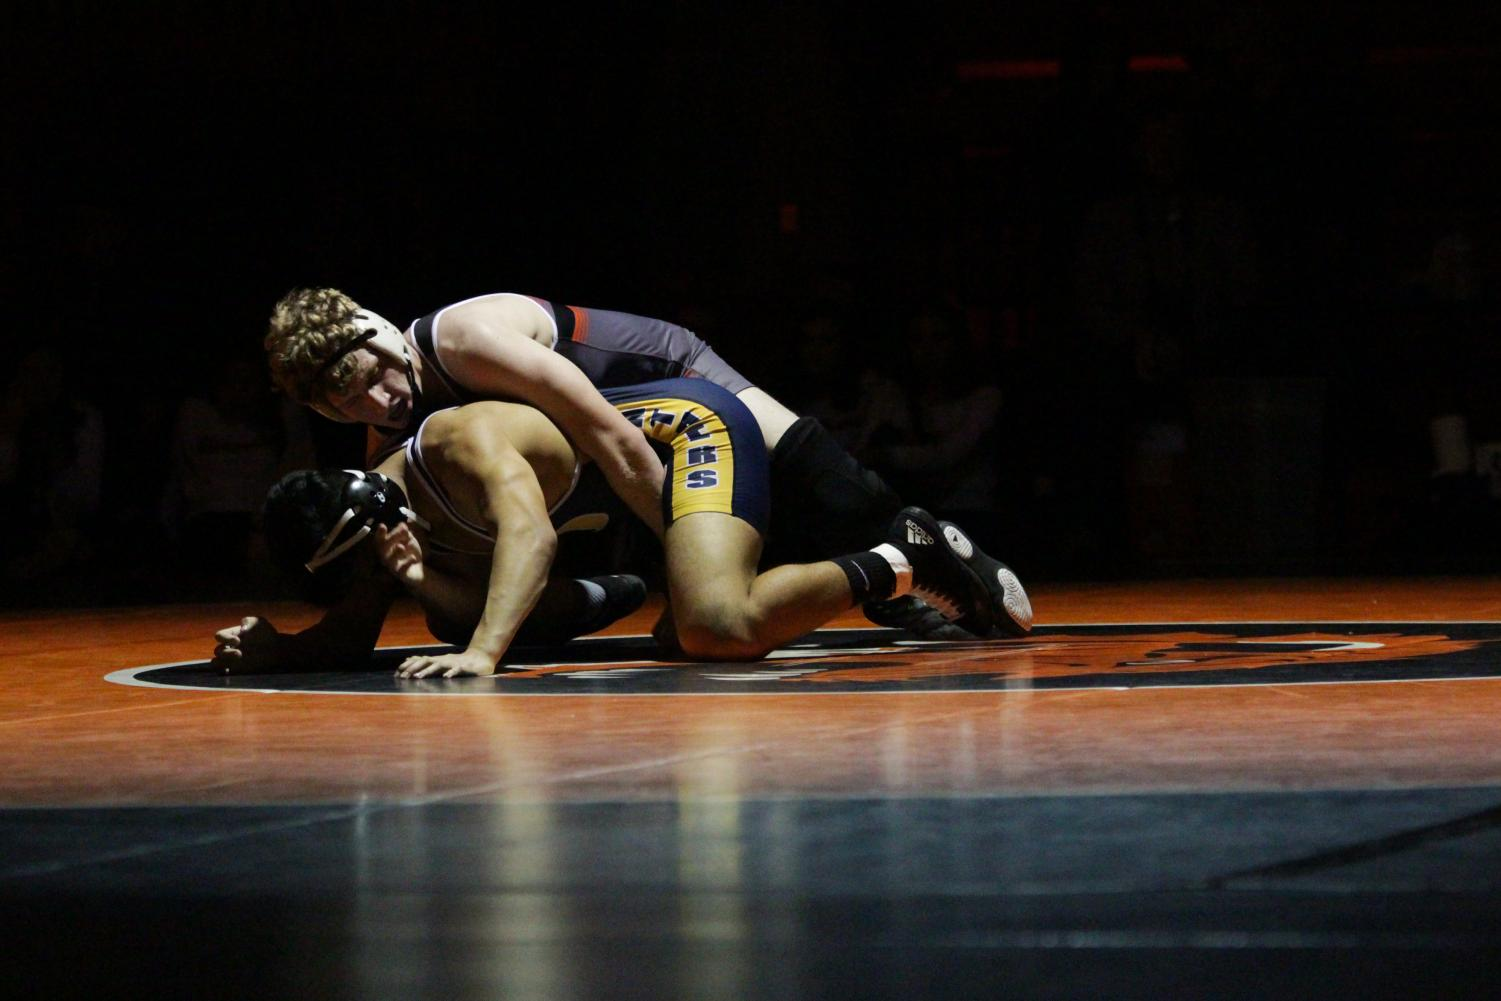 Senior Sam Martin tries to pin an opponent from O'Fallon Township High School on Dec. 29.